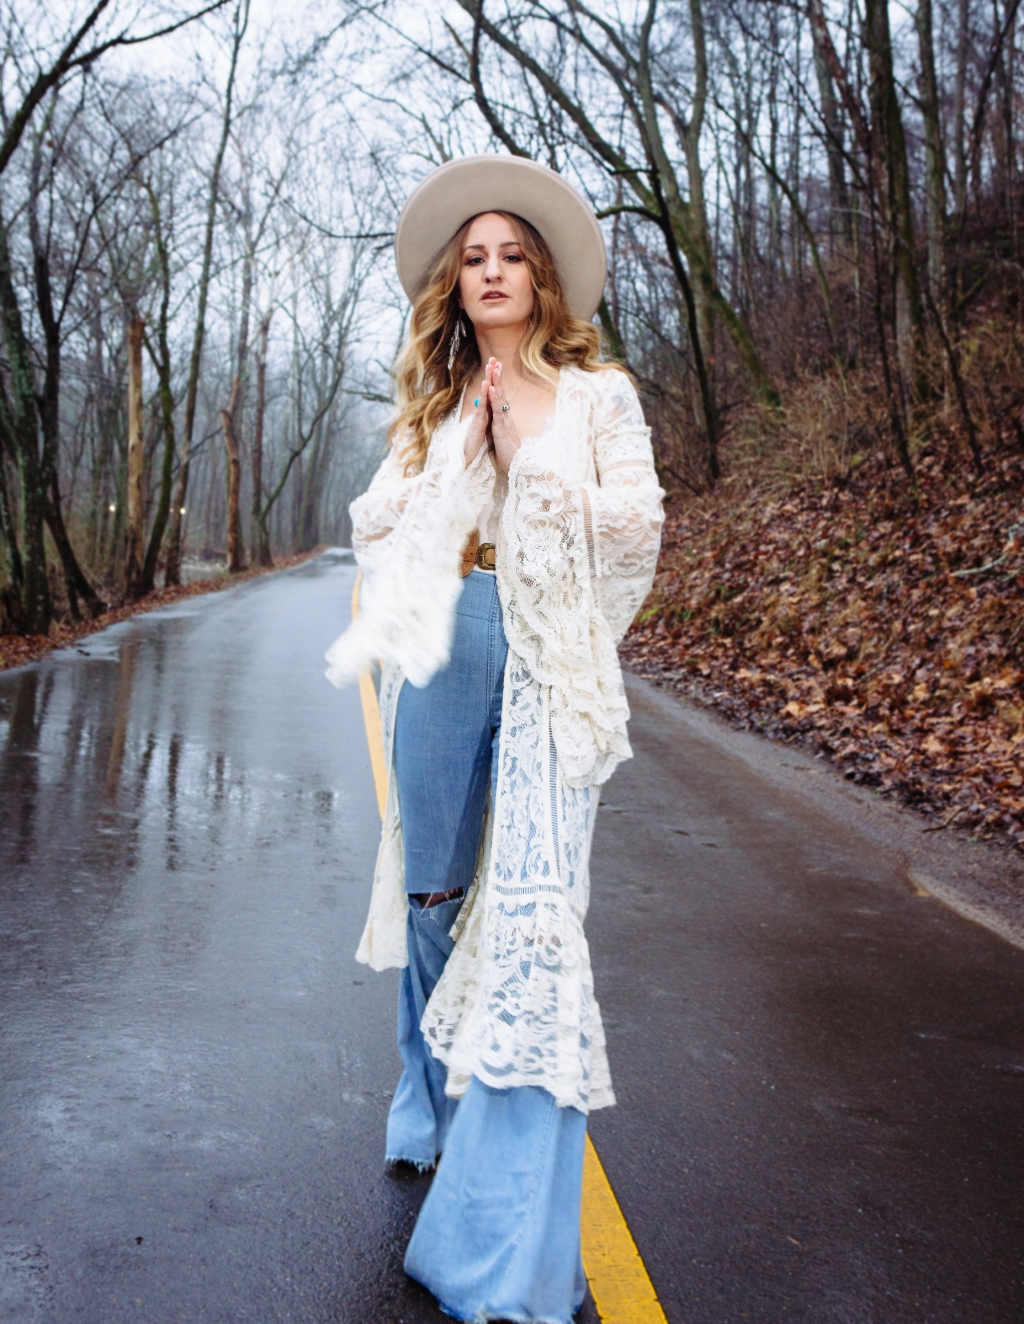 """Women are not going to put up with shit anymore, and it's amazing,"" says Margo Price. ""I don't know when actual equality will come, or if we need to burn more bras, but I'm happy to see some things coming to light, even if they're kind of painful."""